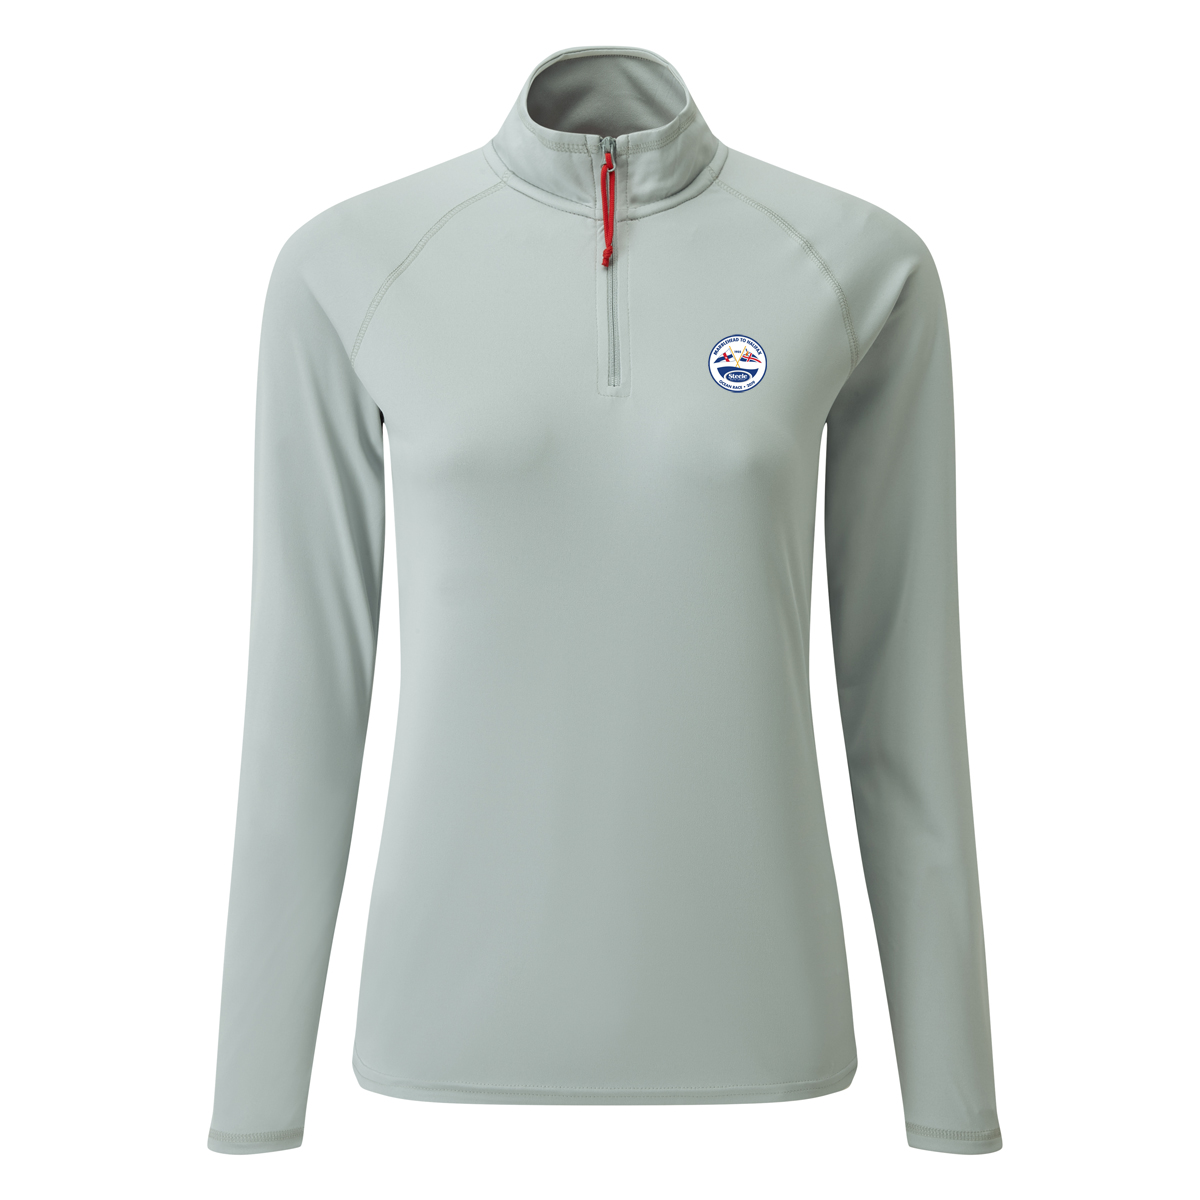 Marblehead to Halifax Ocean Race 2019 - Women's UV Tech 1/4 Zip